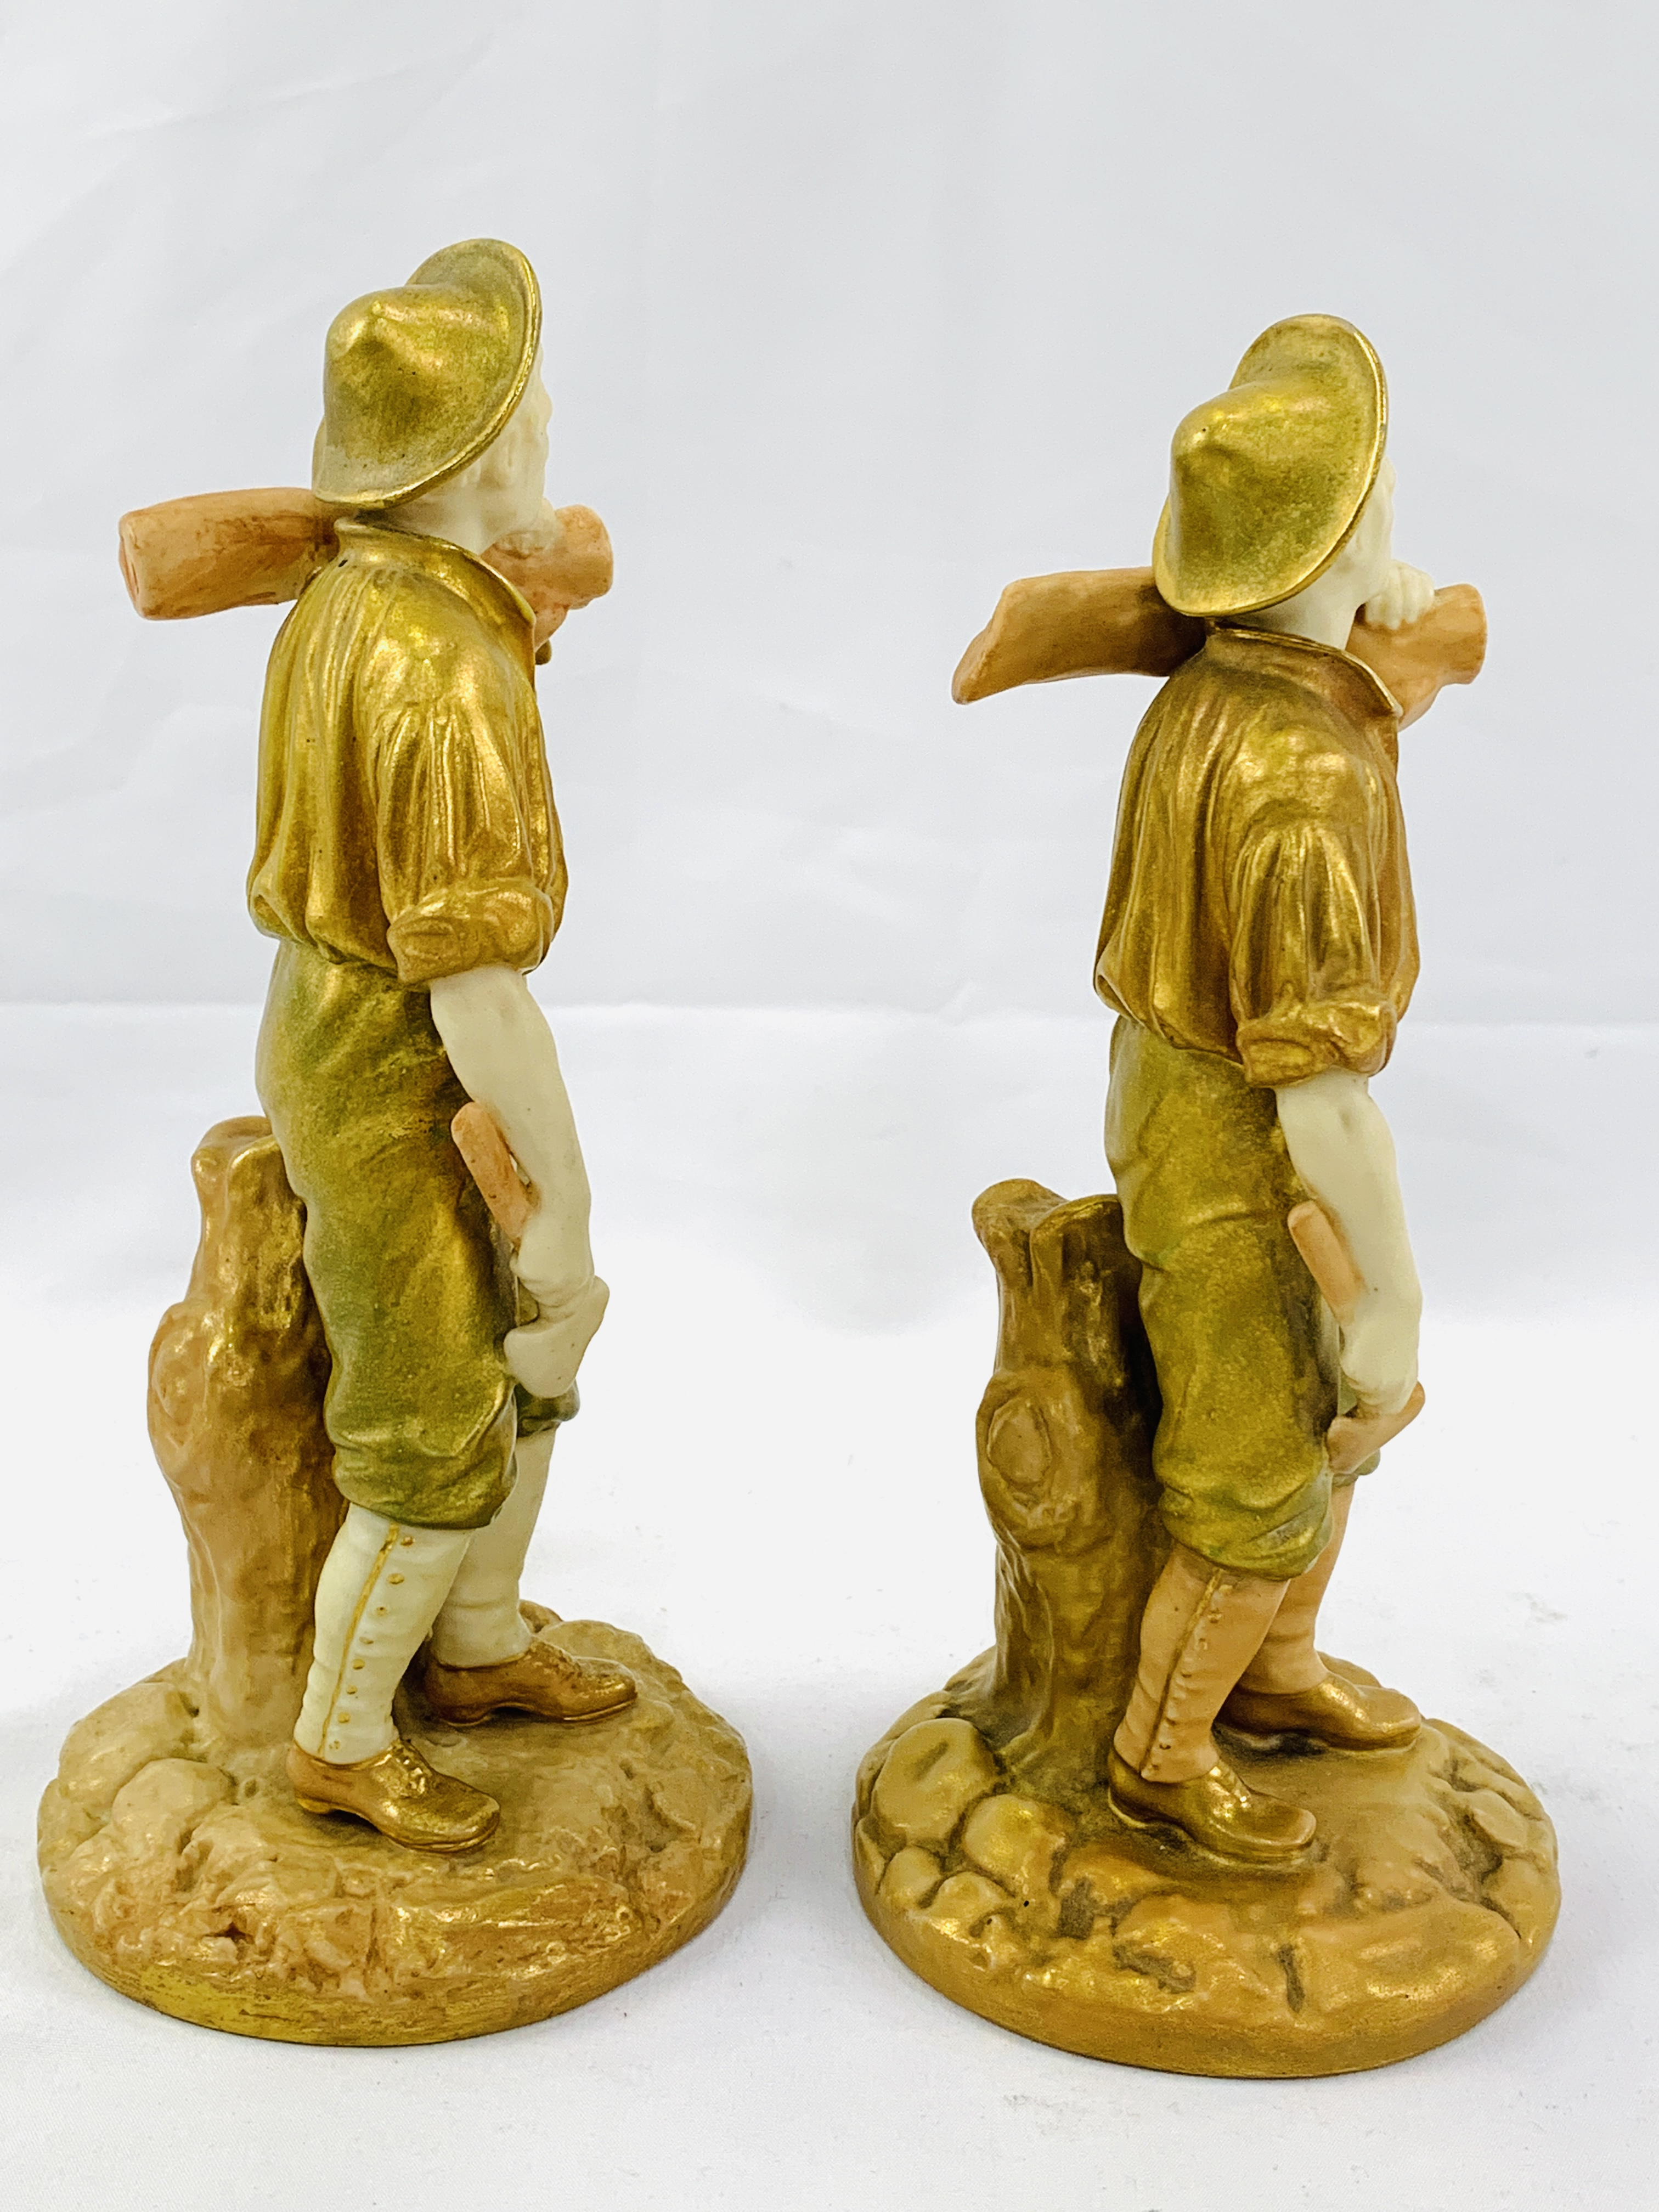 """Two 19th Century Royal Worcester figurines """"The Woodman"""" - Image 2 of 3"""